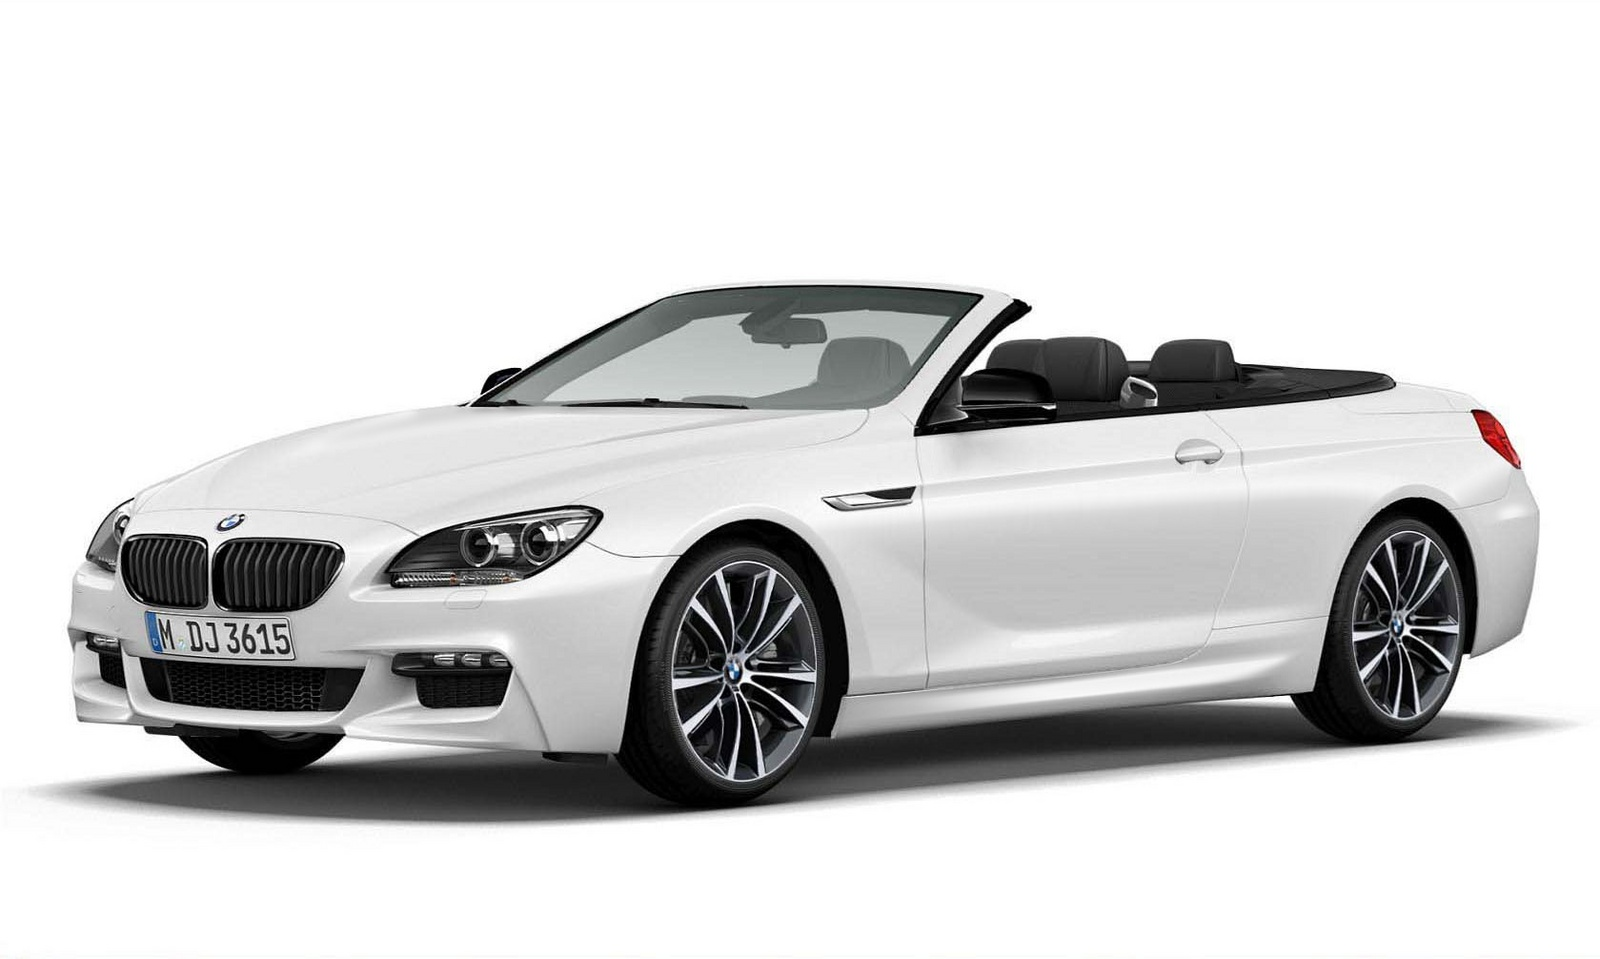 2014 bmw 6 series - photo #2